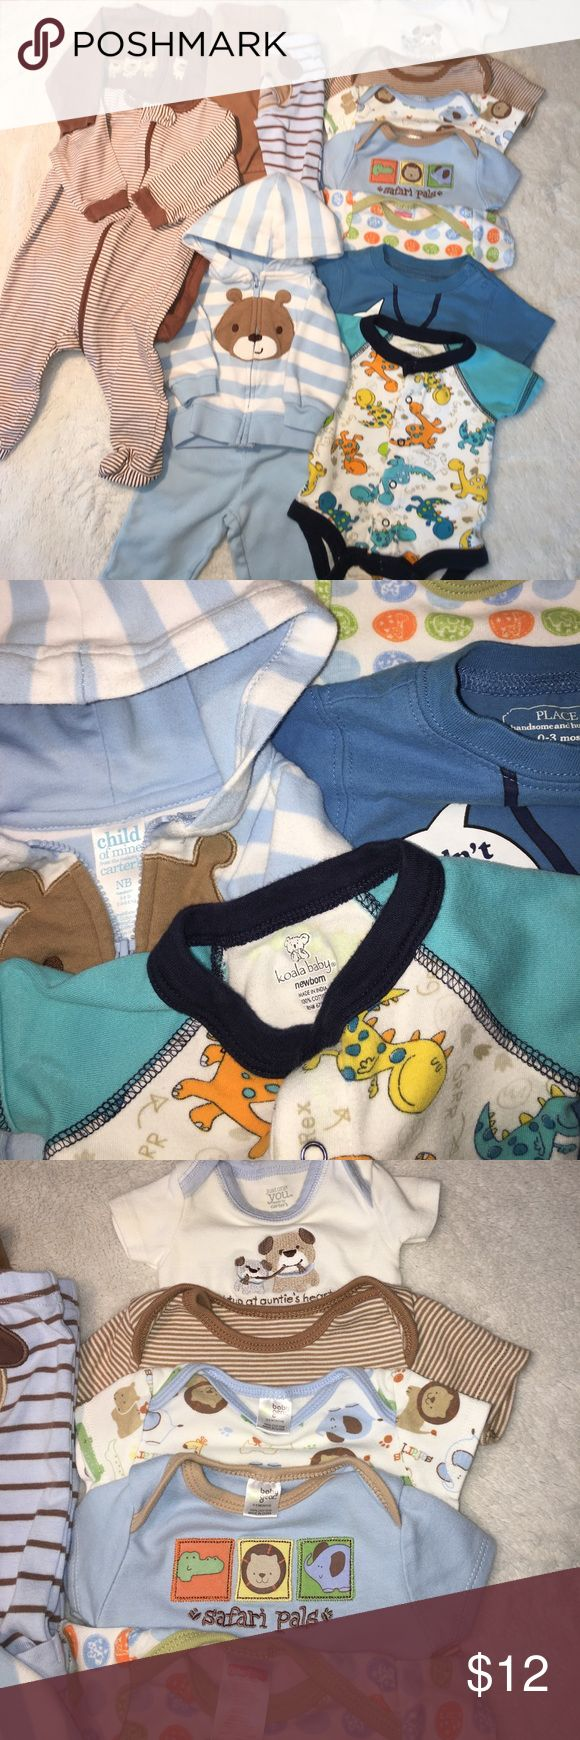 Bundle 13 items- Carters, Children's Place, more Excellent condition! Contains two Gerber zip up light weight sleep and plays, Carter's powder blue and white bear hoodie set, variety of onesies, and two pairs of pants. Sizes are either newborn or 0-3m. Matching Sets